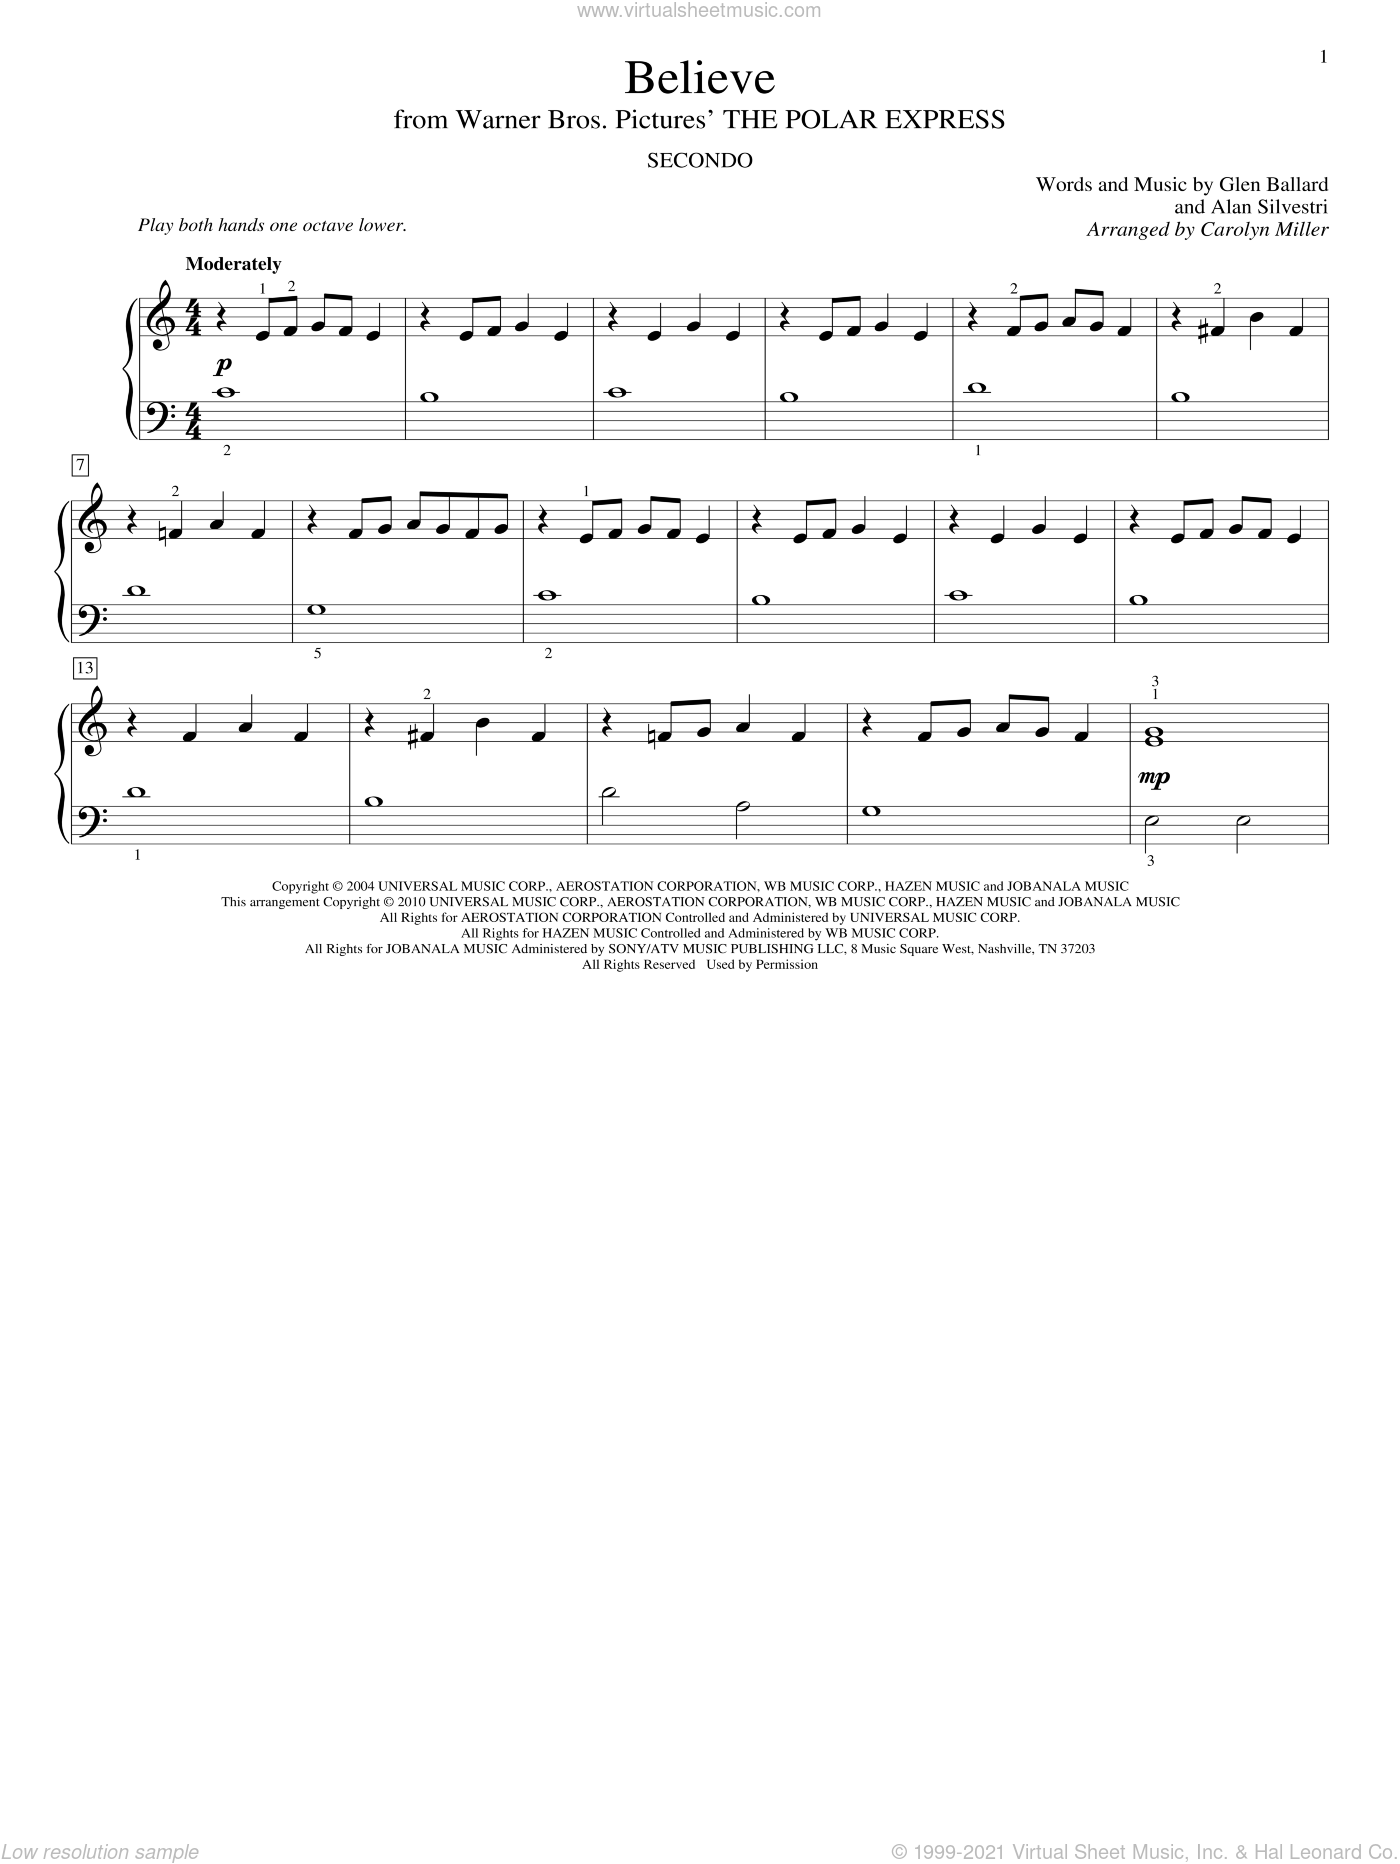 Believe sheet music for piano four hands (duets) by Glen Ballard, Carolyn Miller, John Thompson, Alan Silvestri and Josh Groban. Score Image Preview.